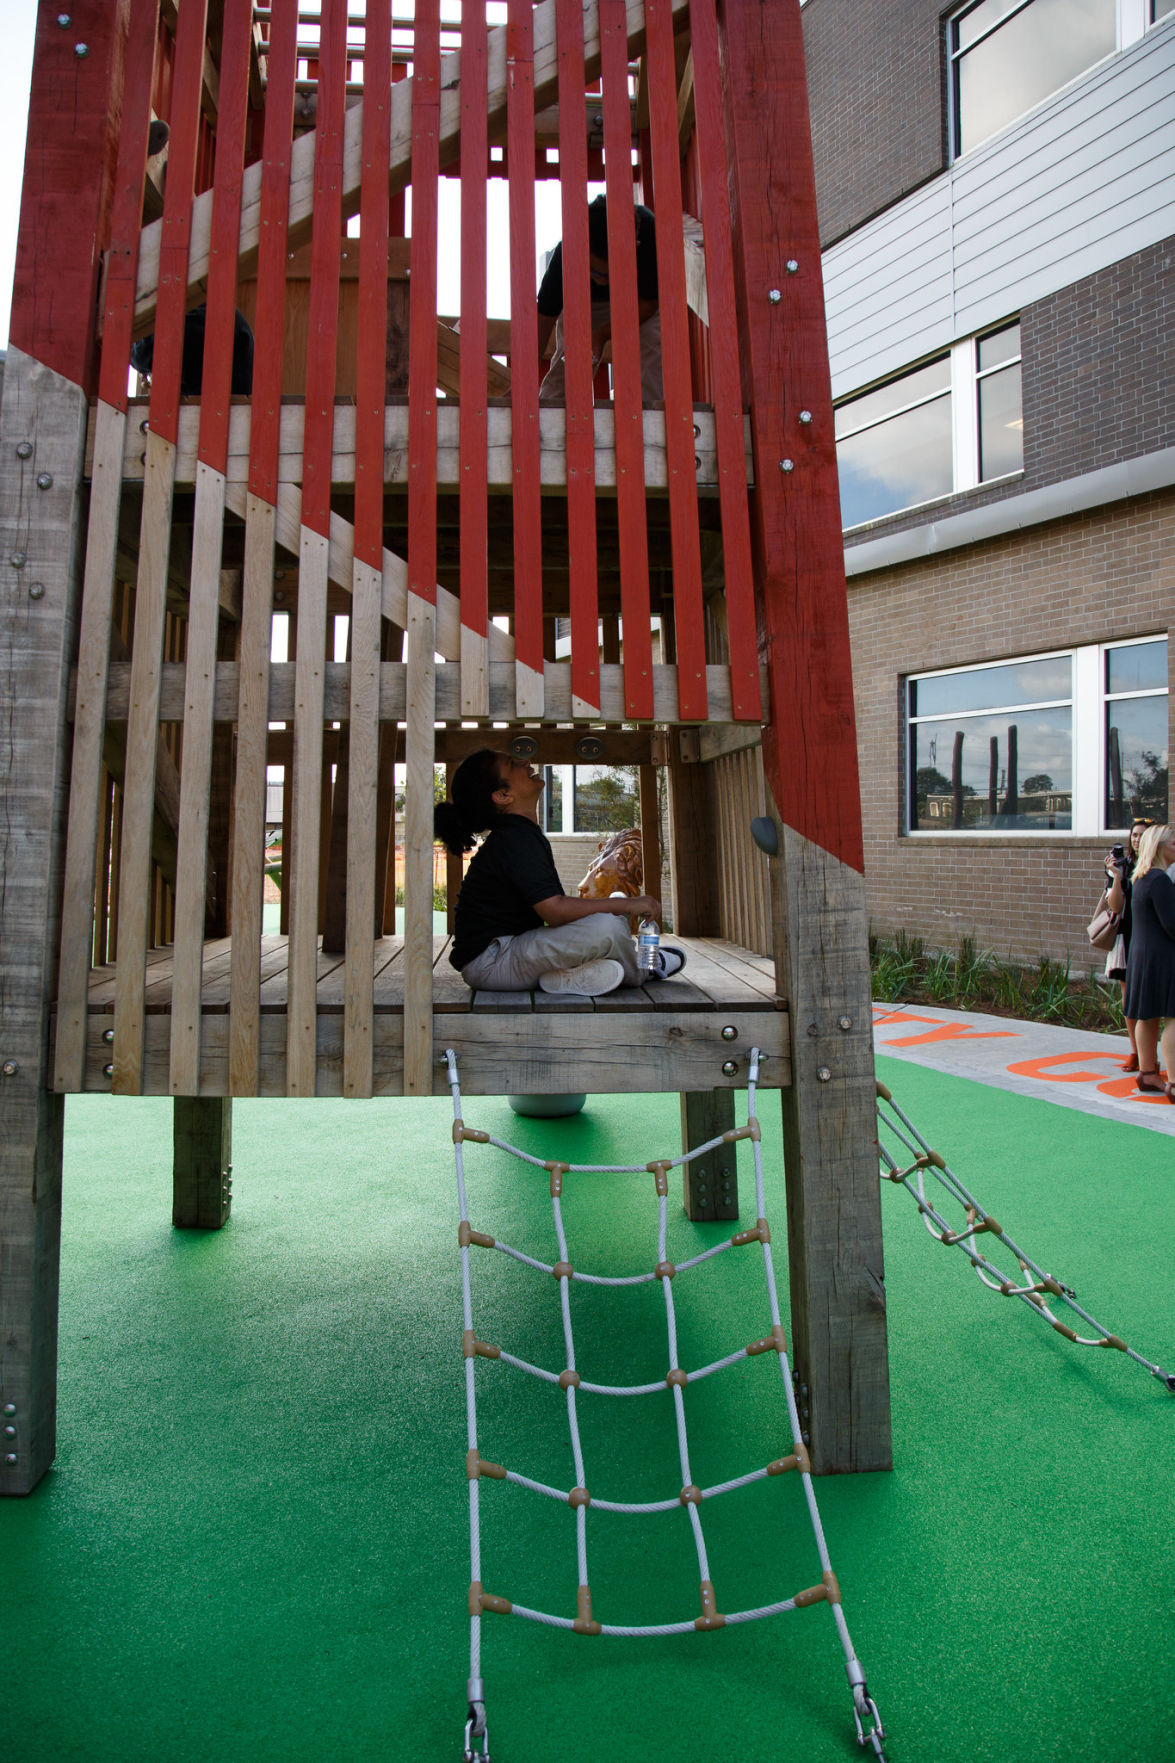 Paul Habans Charter unveils the 1st 'green schoolyard' in New Orleans